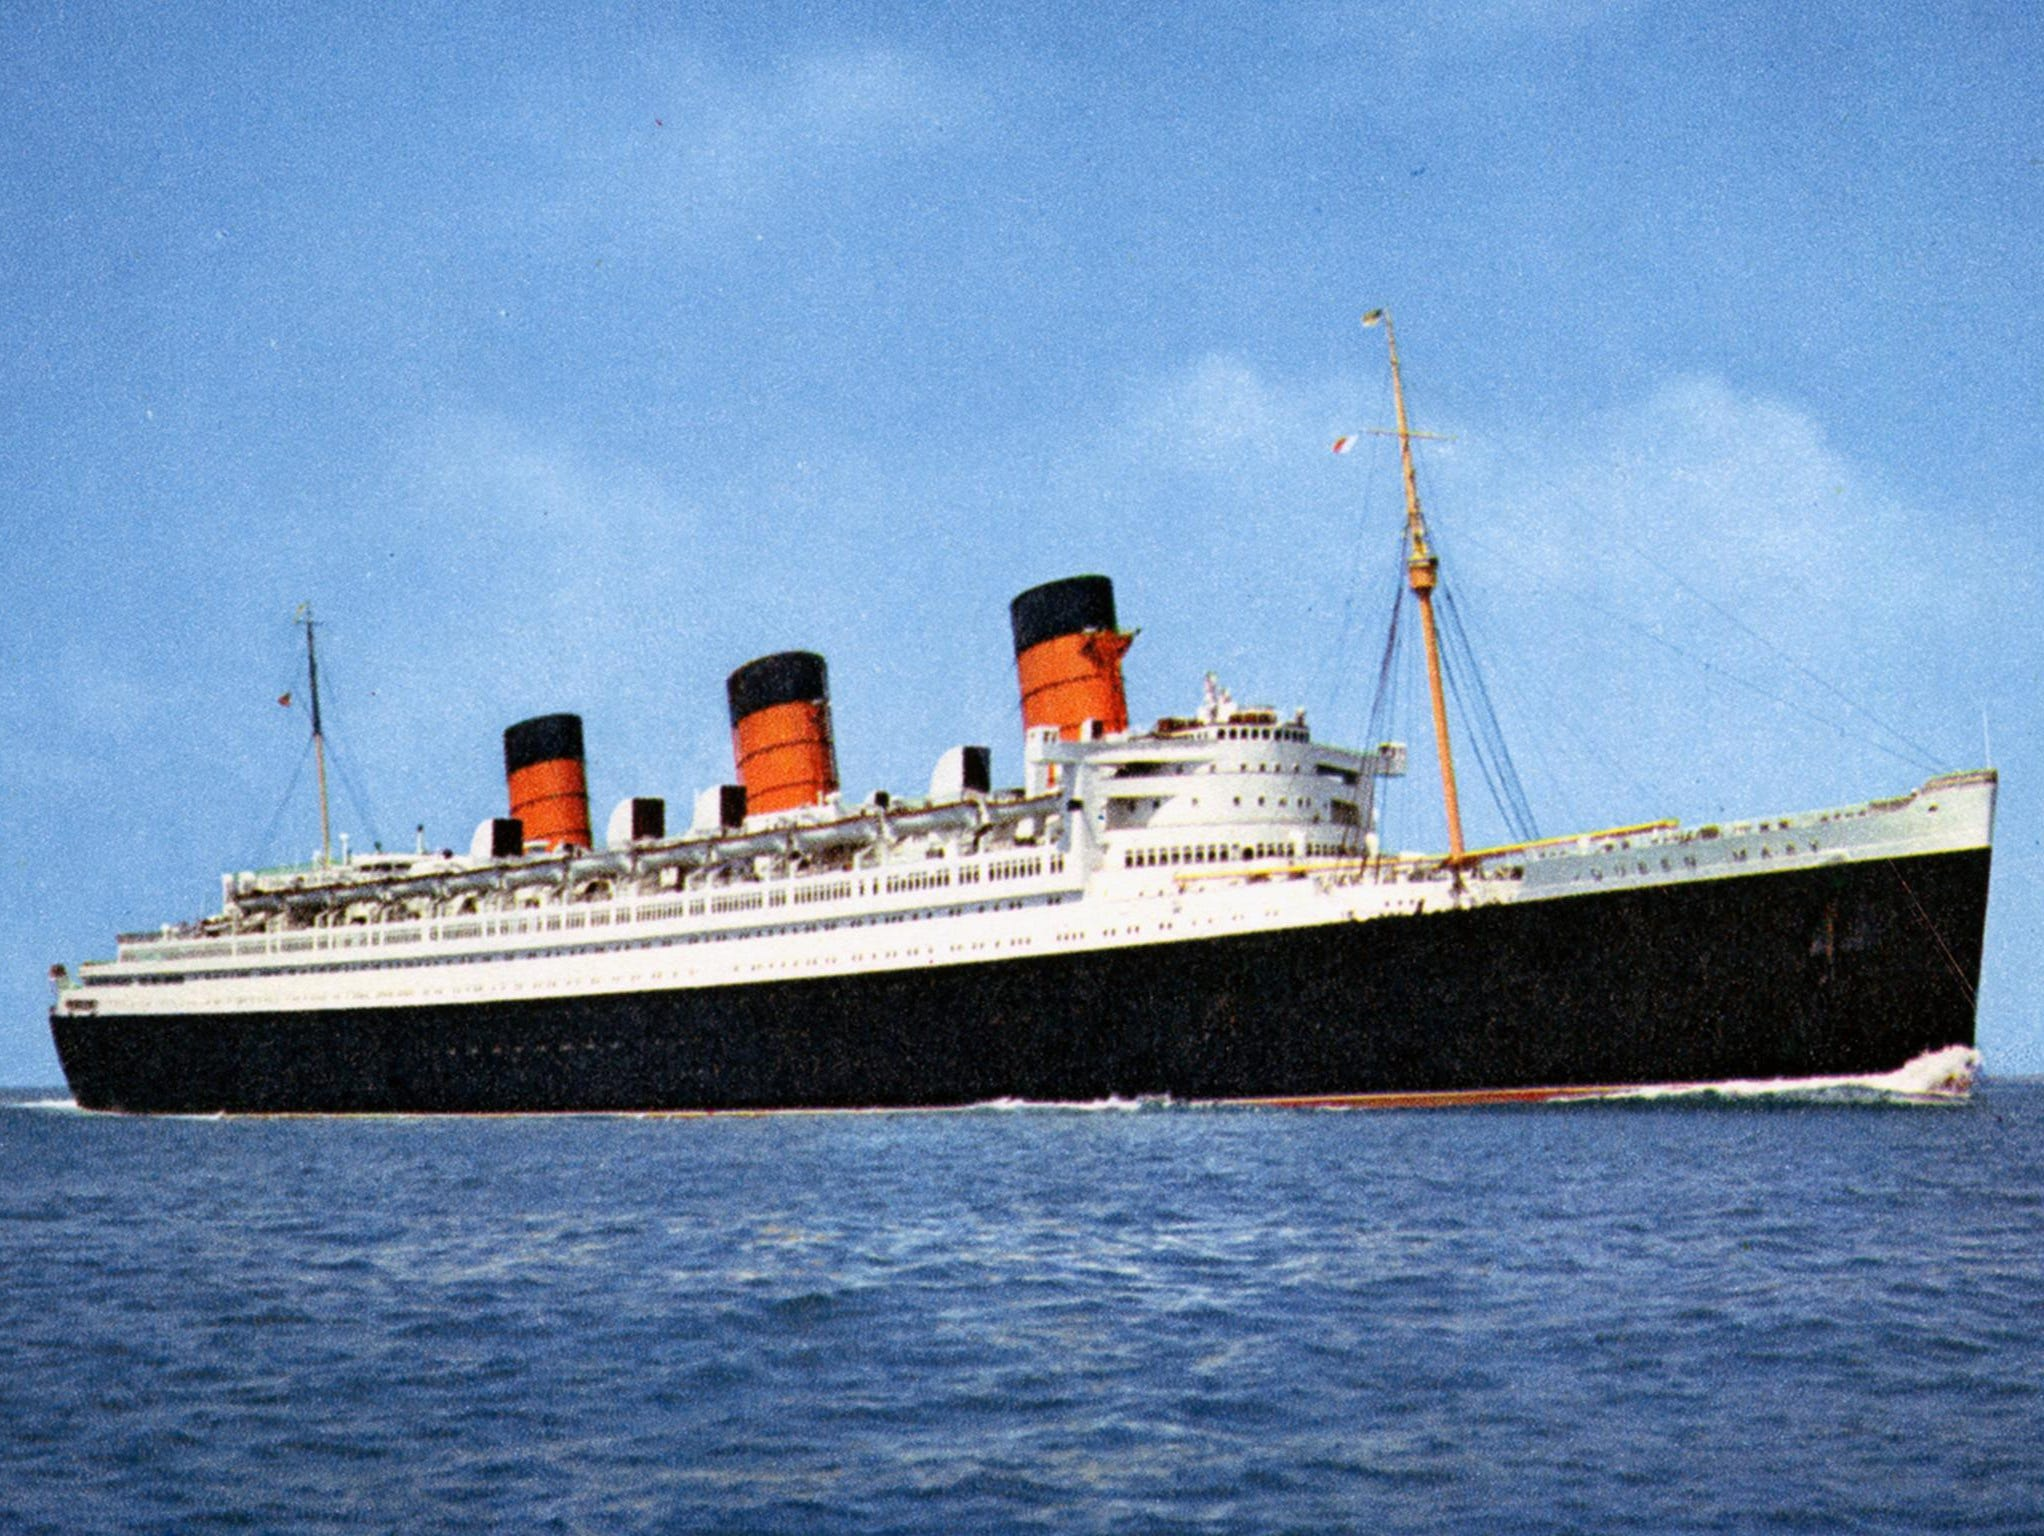 After a long and thorough restoration at Southampton, the Queen Mary returned to trans-Atlantic passenger service on July 31, 1947. Together with the Queen Elizabeth, the two ships maintained weekly crossings for the next two decades. Cunard-White Star Line reverted to Cunard Line in 1949 and in 1998, Cunard was purchased by the Carnival Corp.